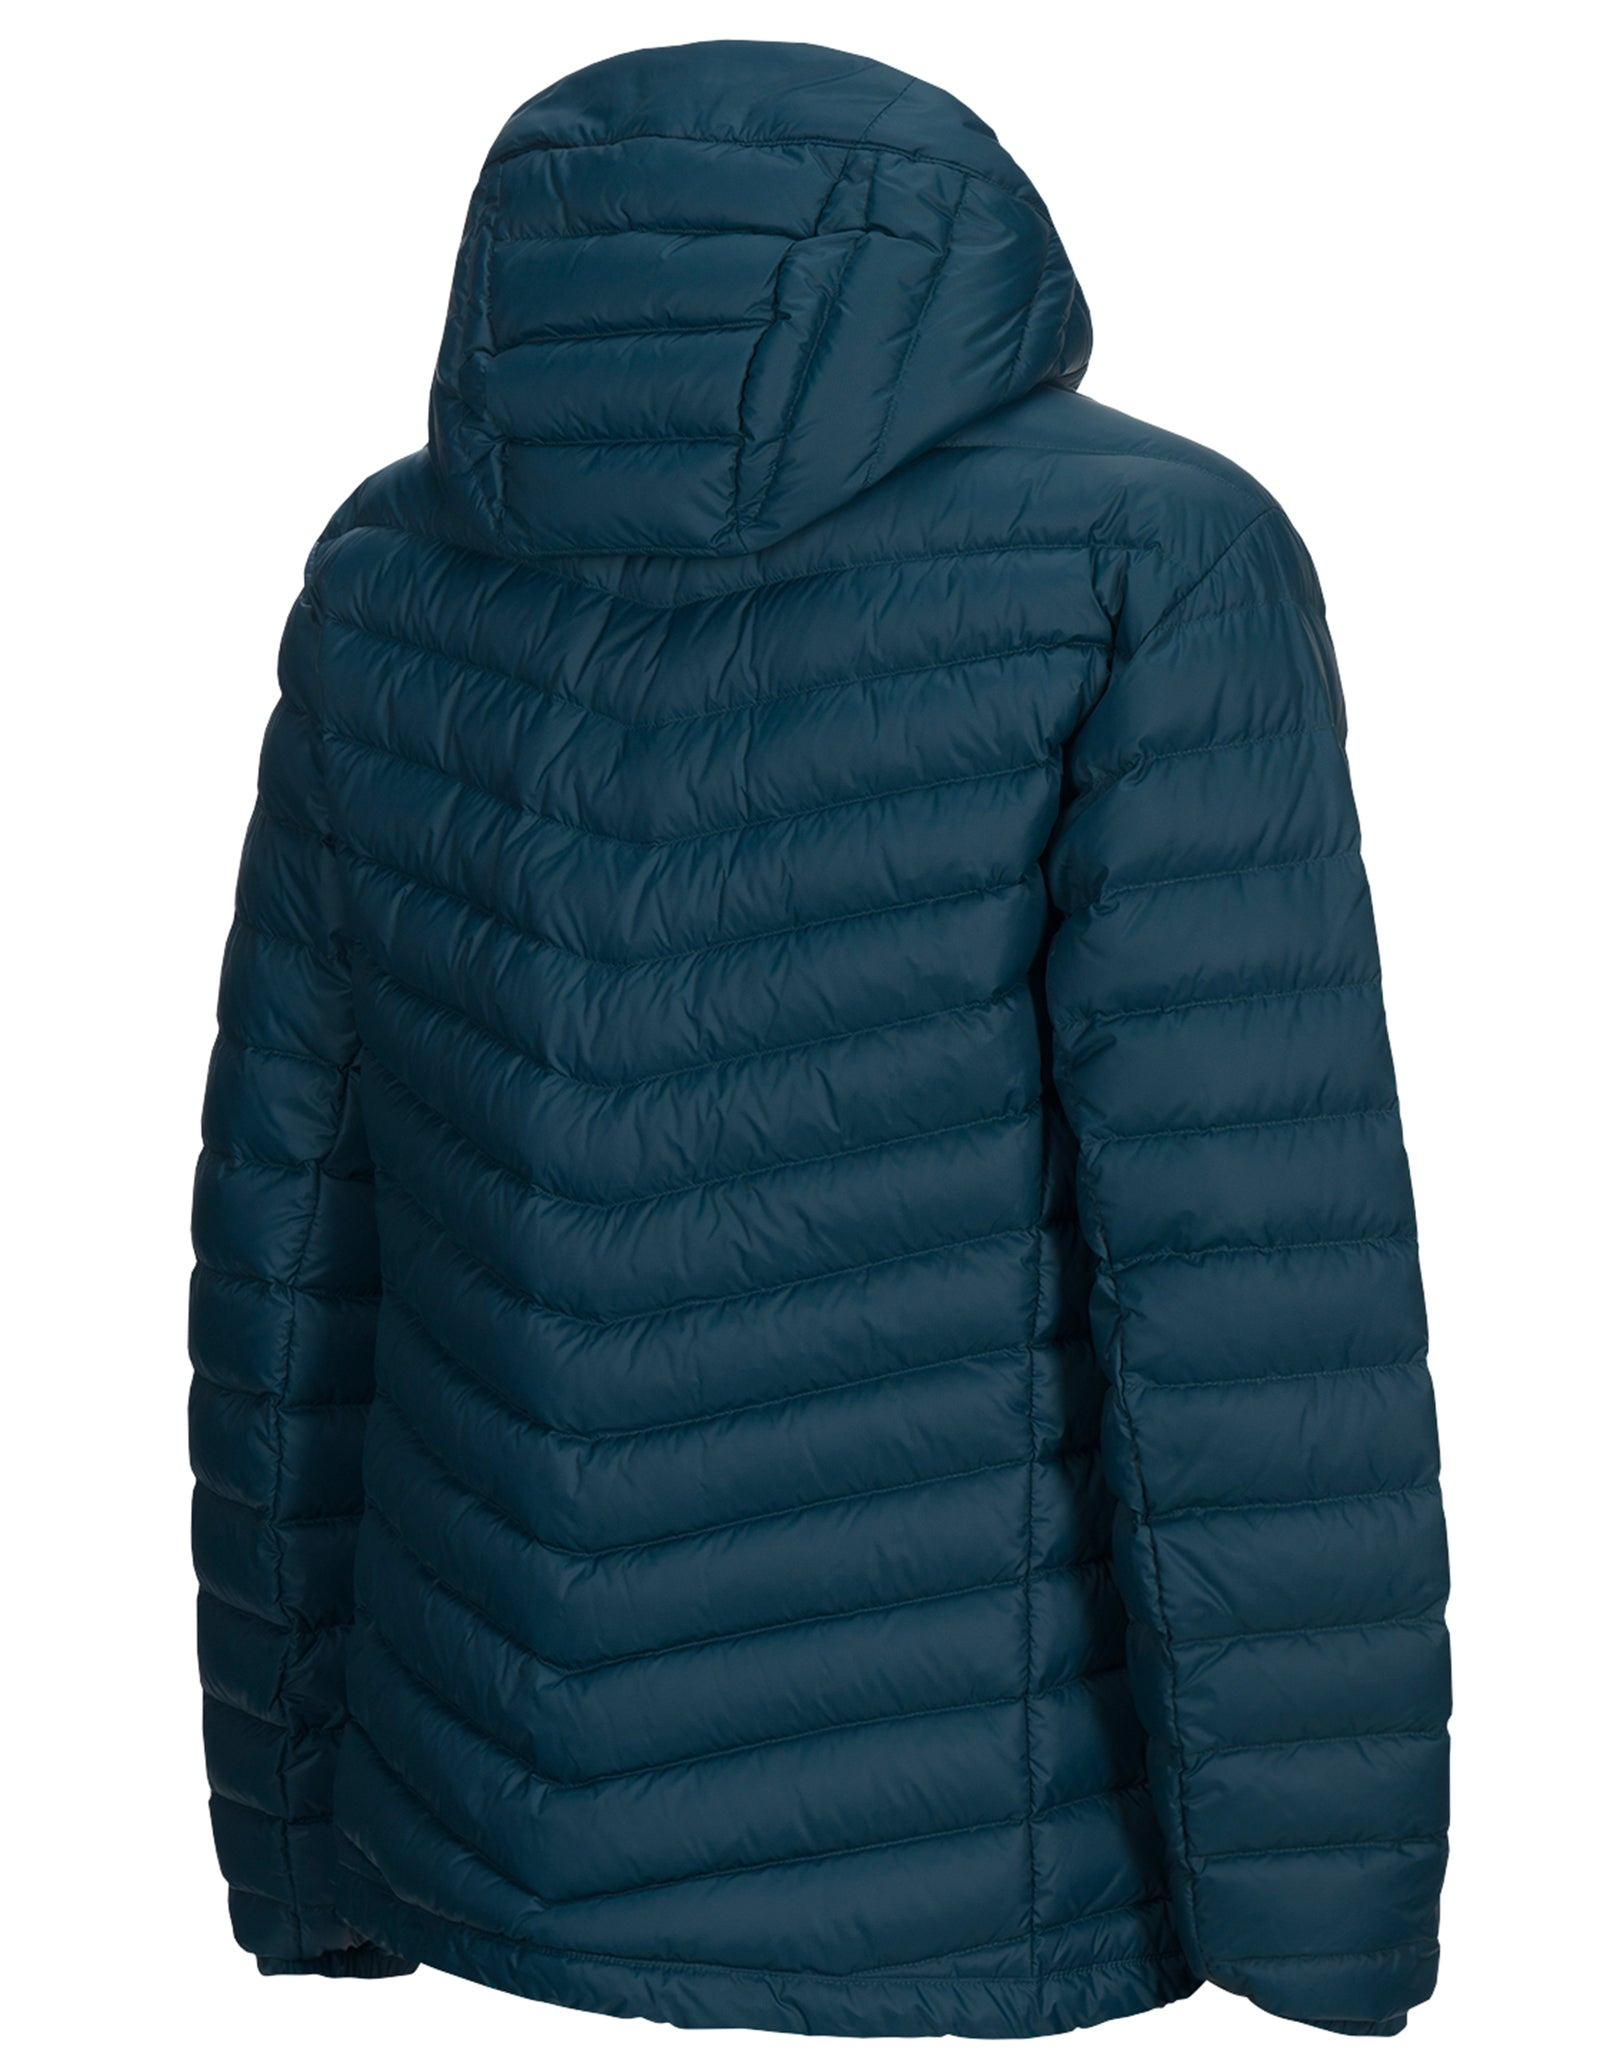 2a3e0be023a Mens Frost Down Hood Jacket - Teal Extreme